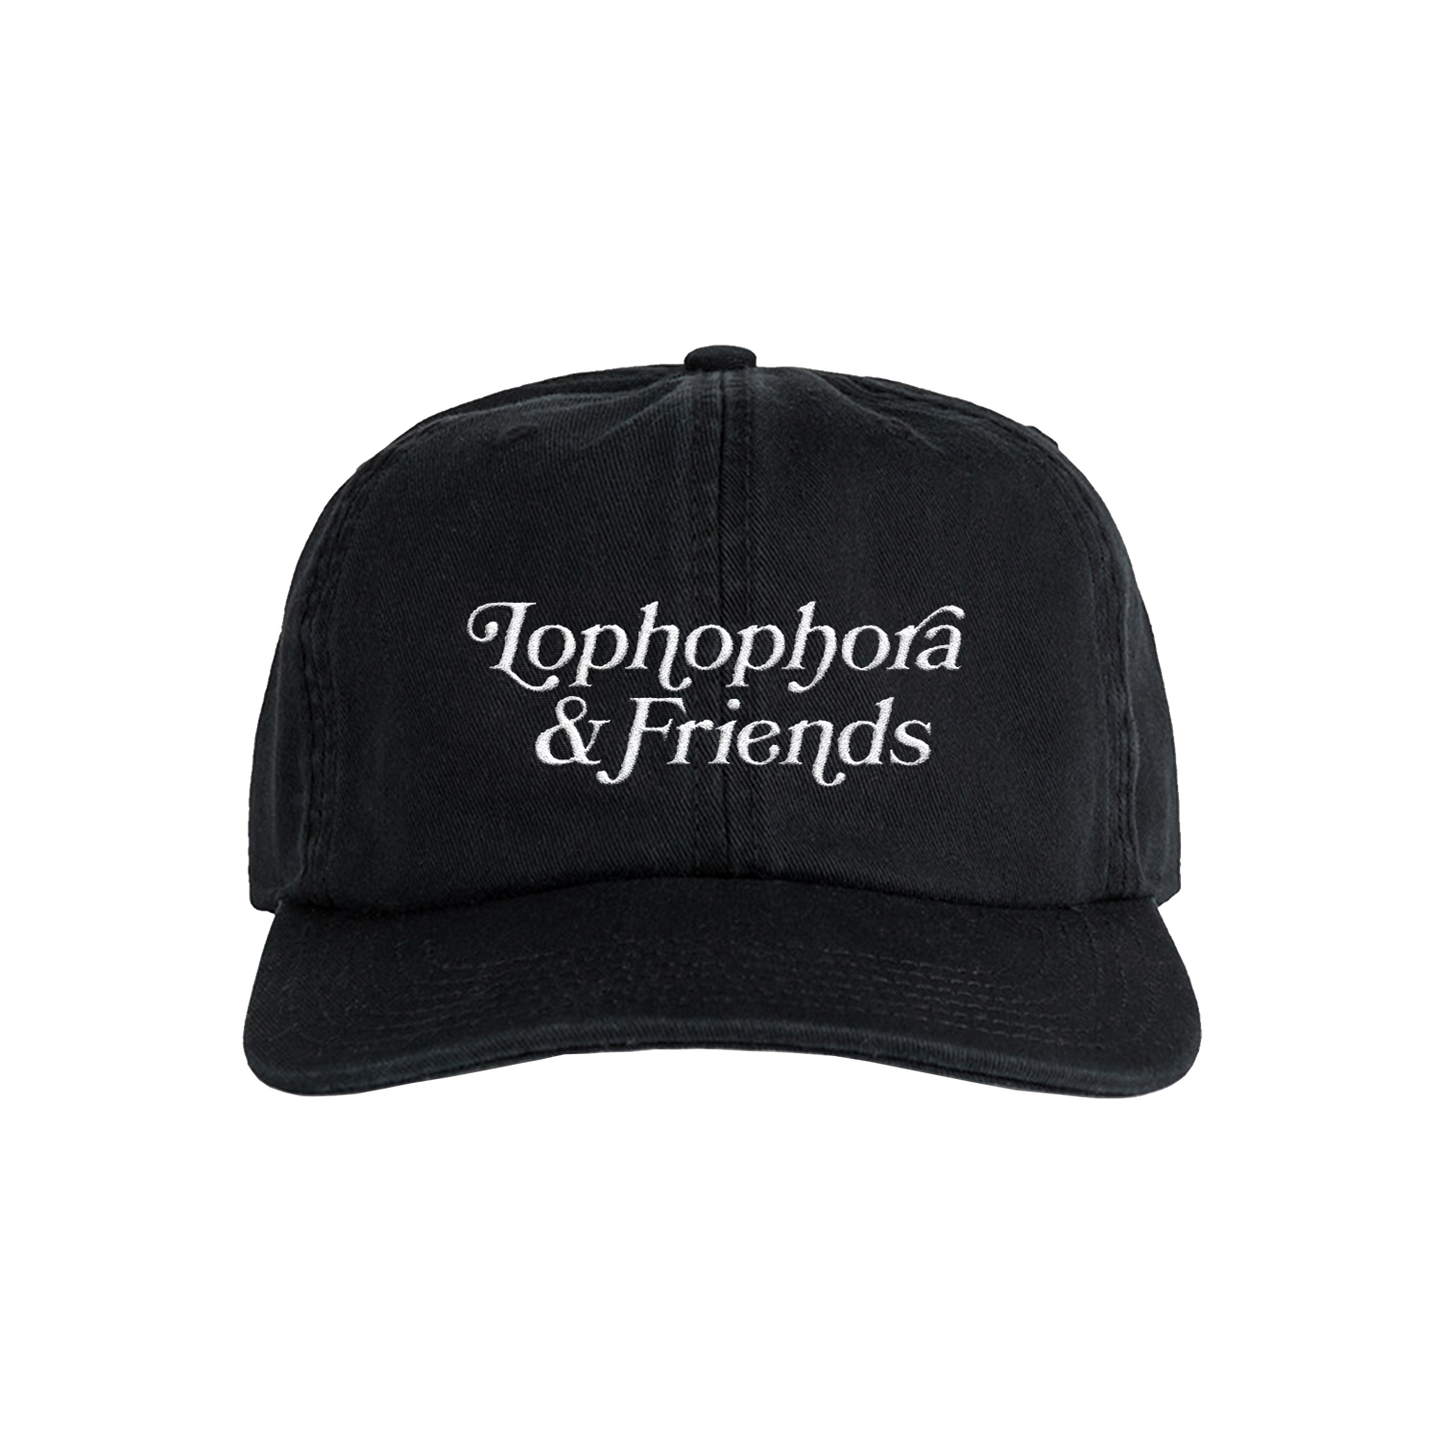 'Lophophora & Friends' Unstructured 6 Panel StrapBack Hat (Black)